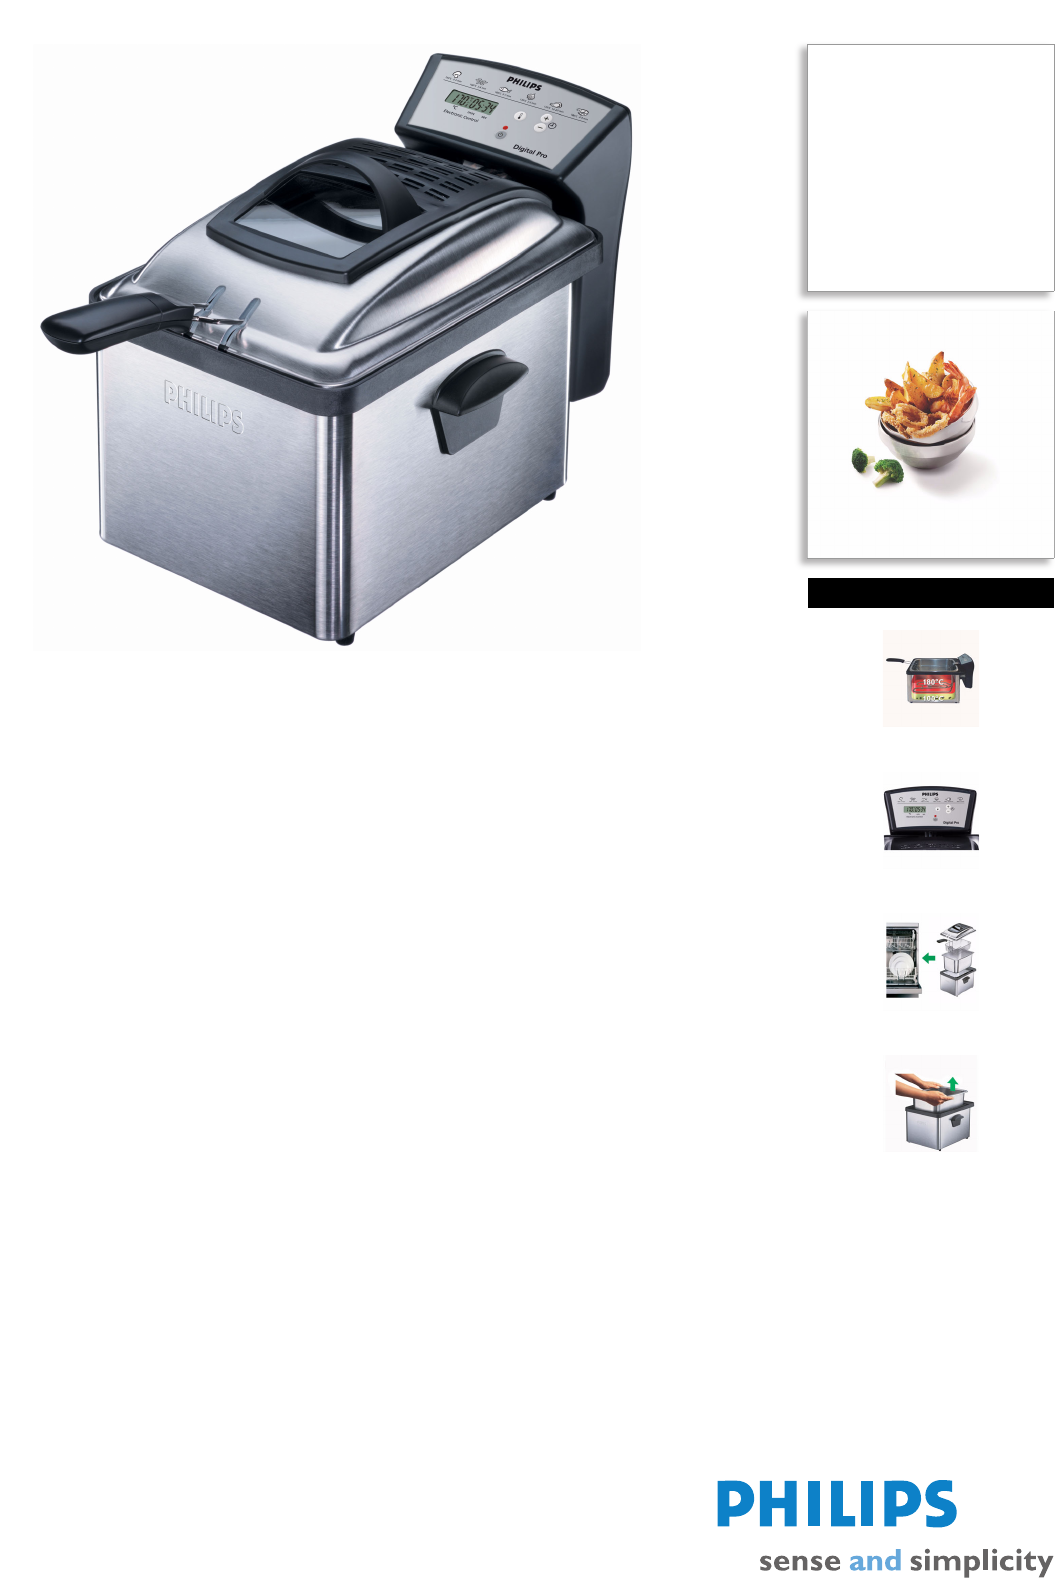 philips fryer hd6161 user guide manualsonline com rh kitchen manualsonline com Philips User Guides Speaker Bt7900 Philips User Guides